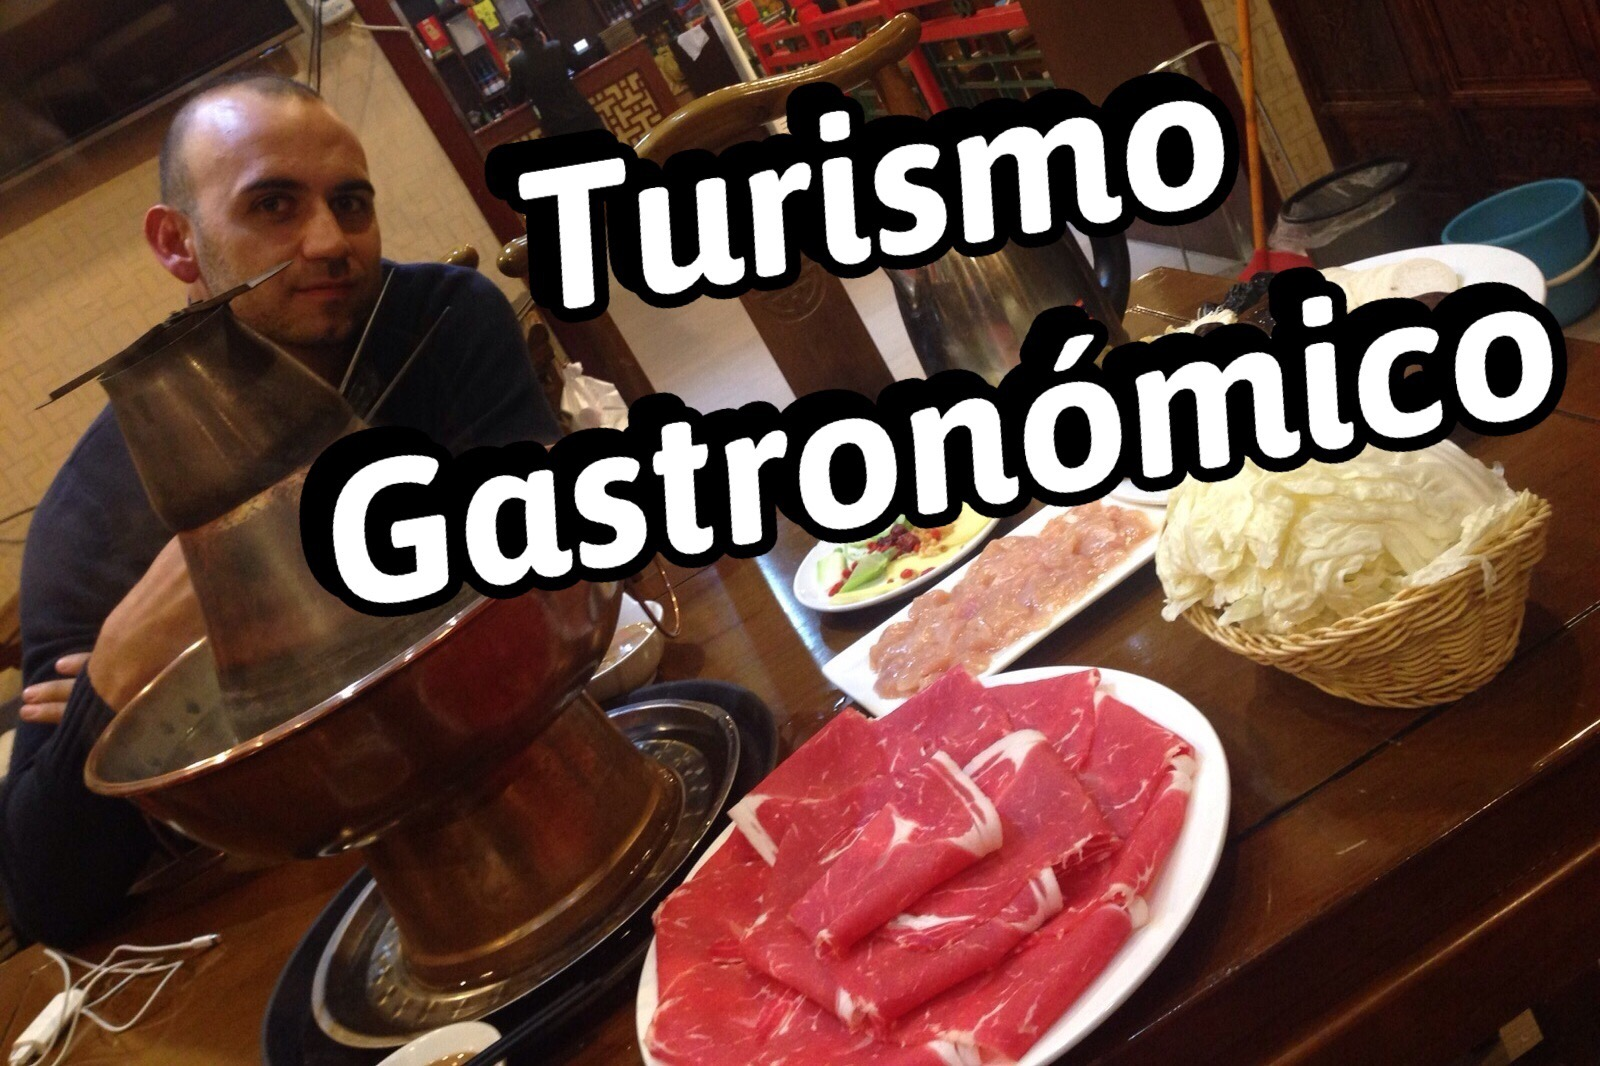 Turismo Gastronomico